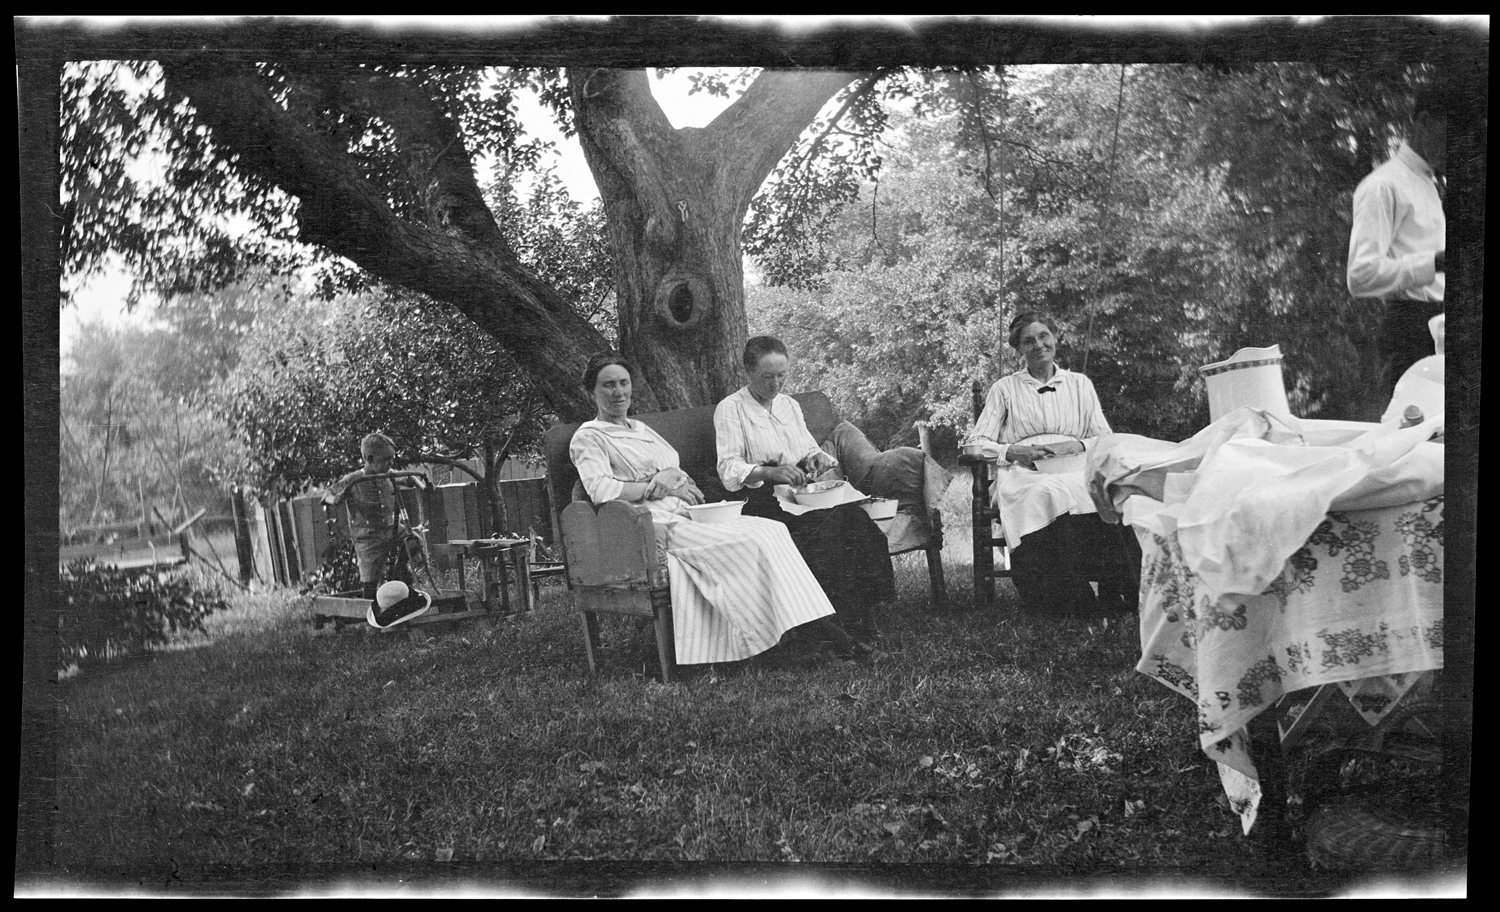 Jennie McLauthlen (right), her sister Mary Drew (left) and another women sit under a tree; toddler plays at left; a man walks out of the frame at right.